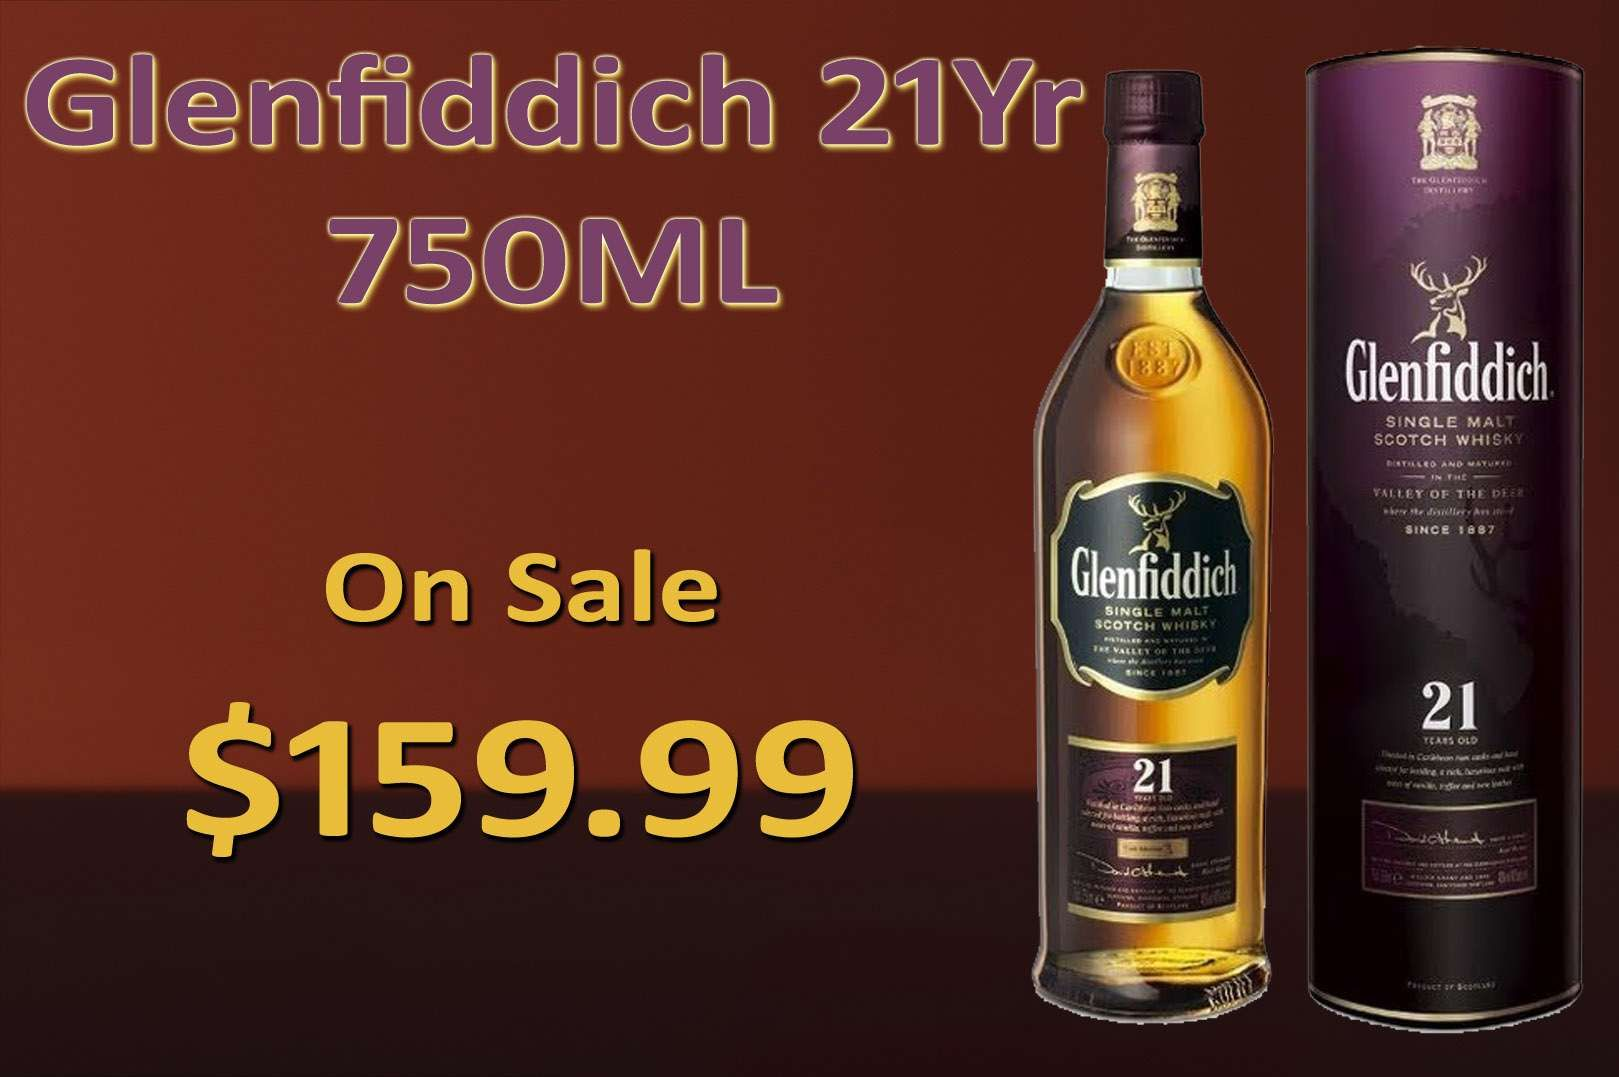 Glenfiddich 21yr 750ml Wine And Beer Wine Online Wine Discount